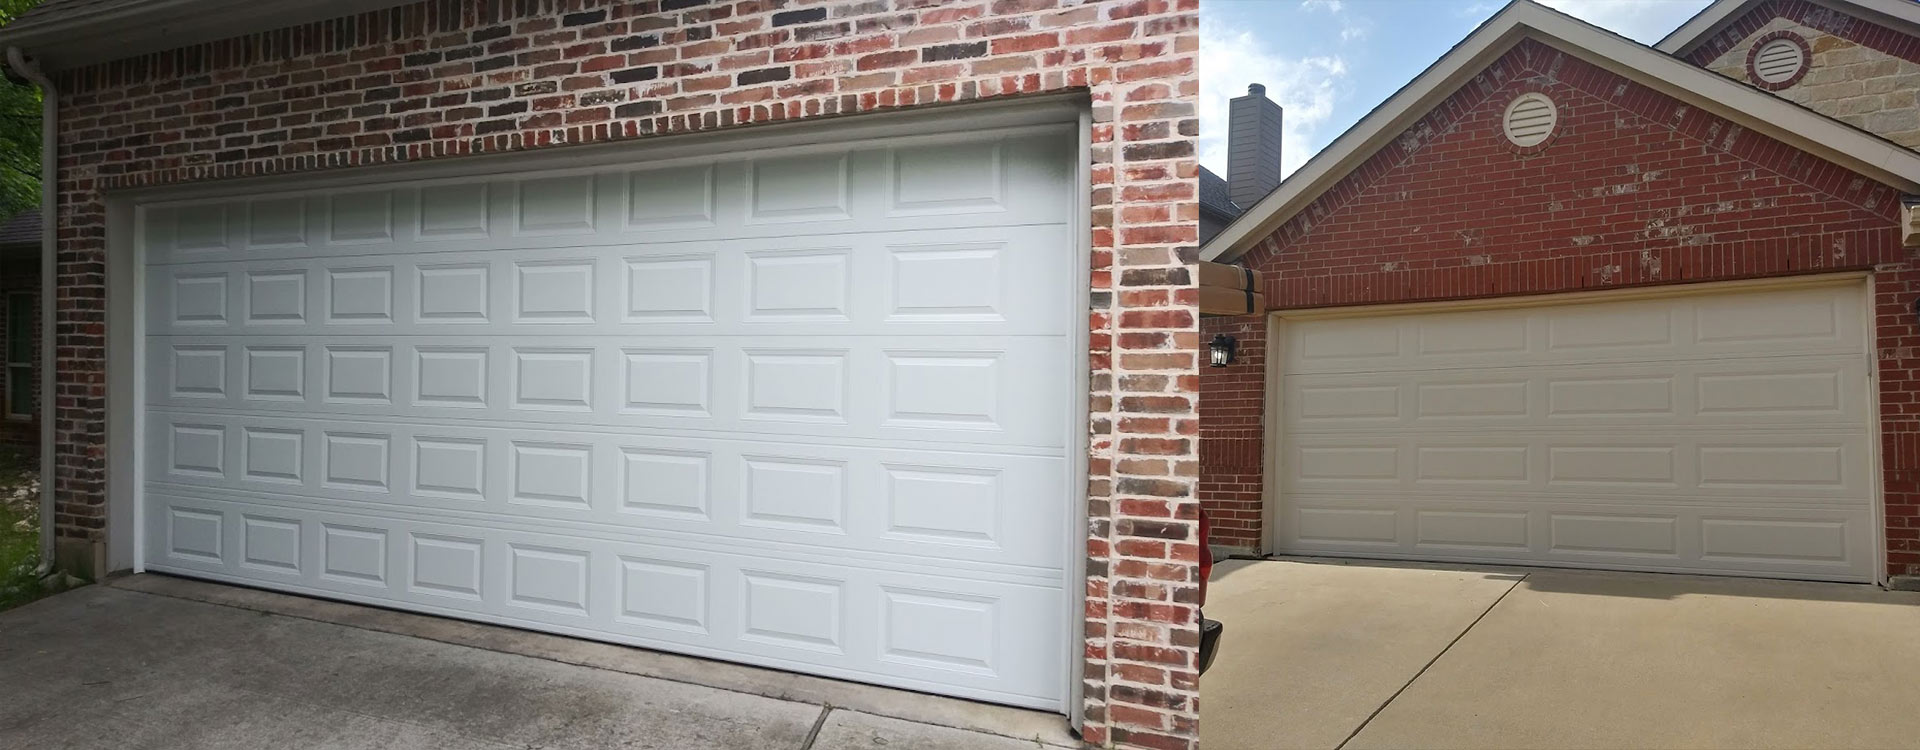 Garage Door Repair Yelp Denton Overhead Garage Door Garage Door Repair Denton